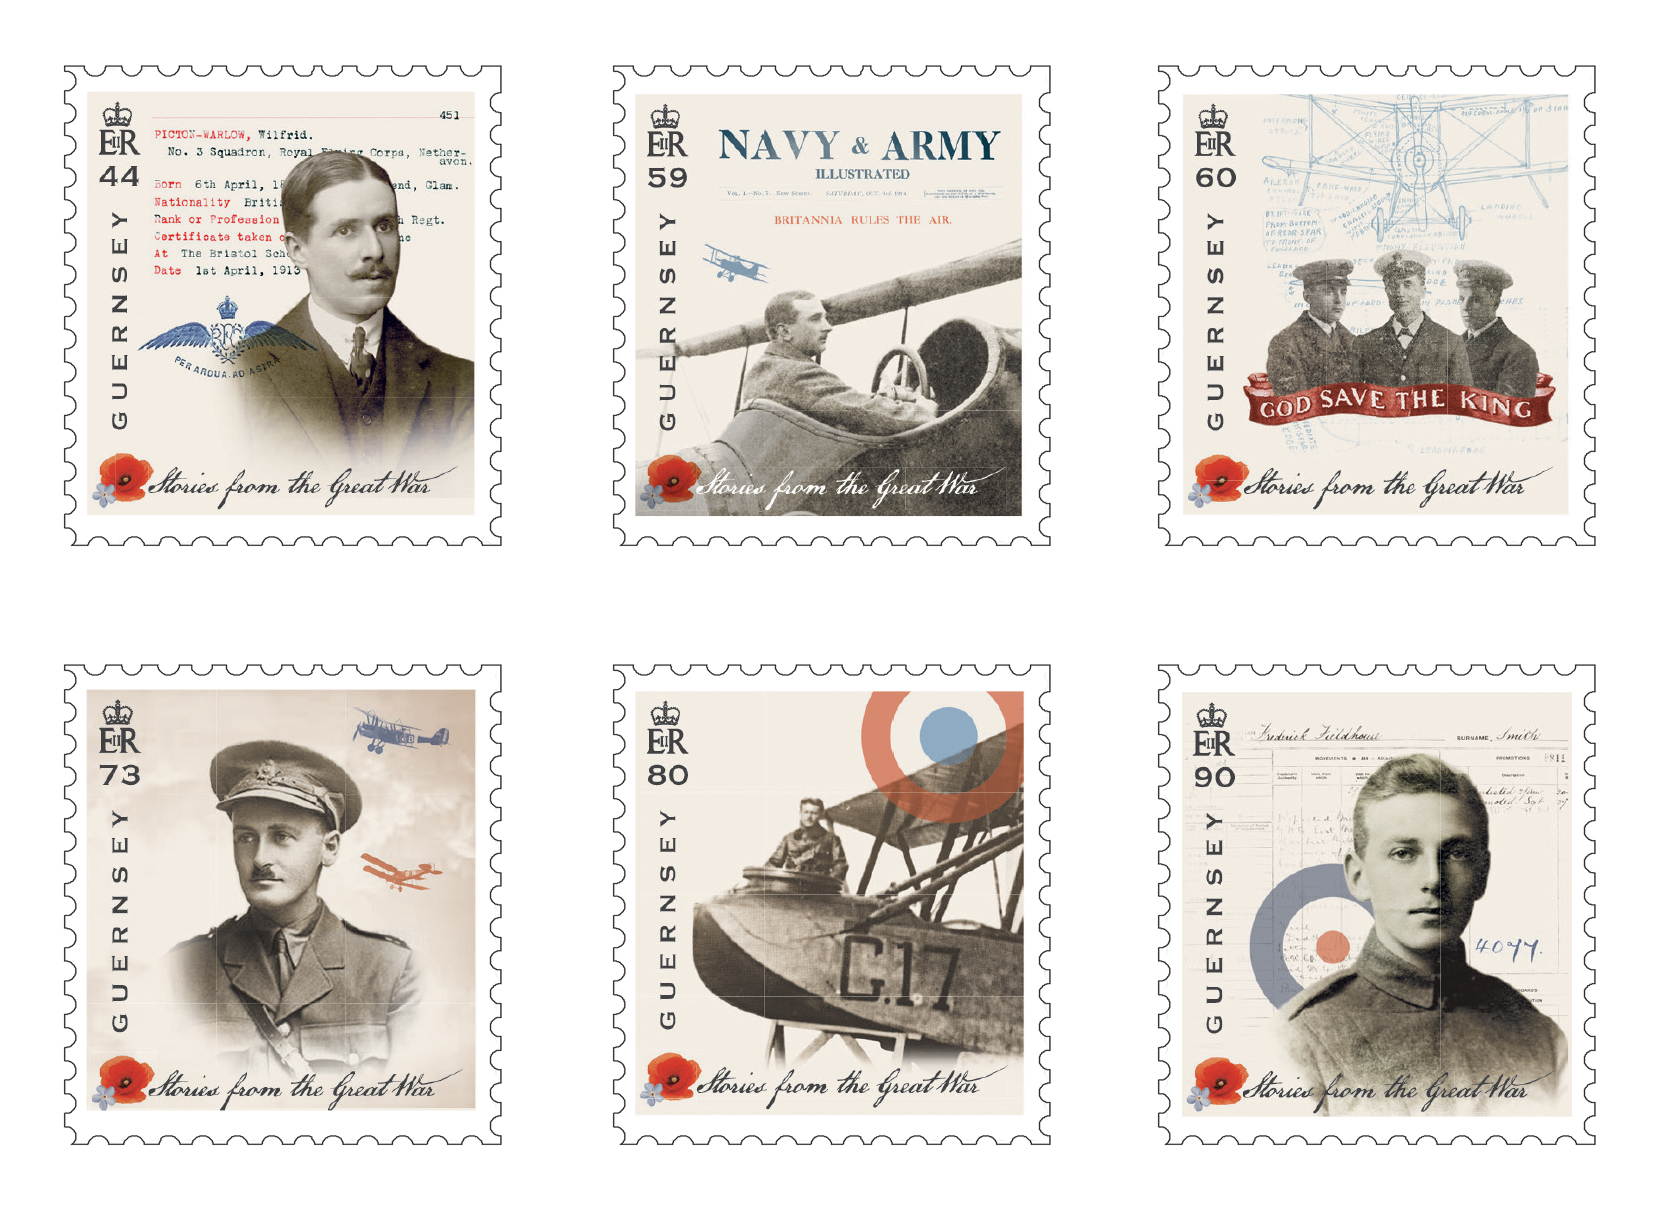 Guernsey Post to issue fourth set of stamps for Great War series